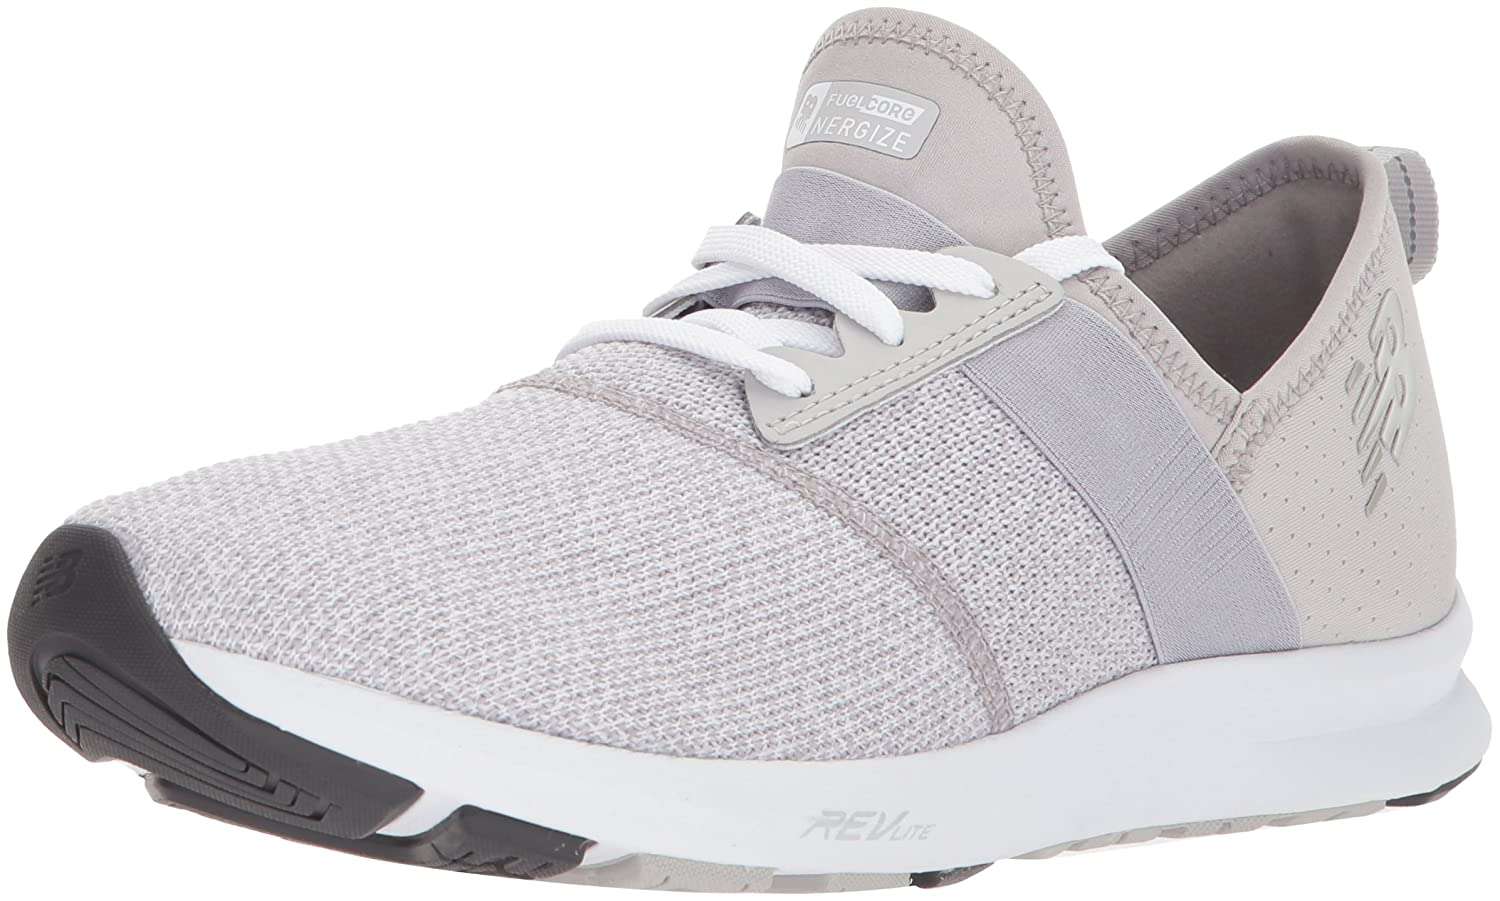 gris (Light gris) New Balance Wxnrgv1, Chaussures de Fitness Femme 42.5 EU